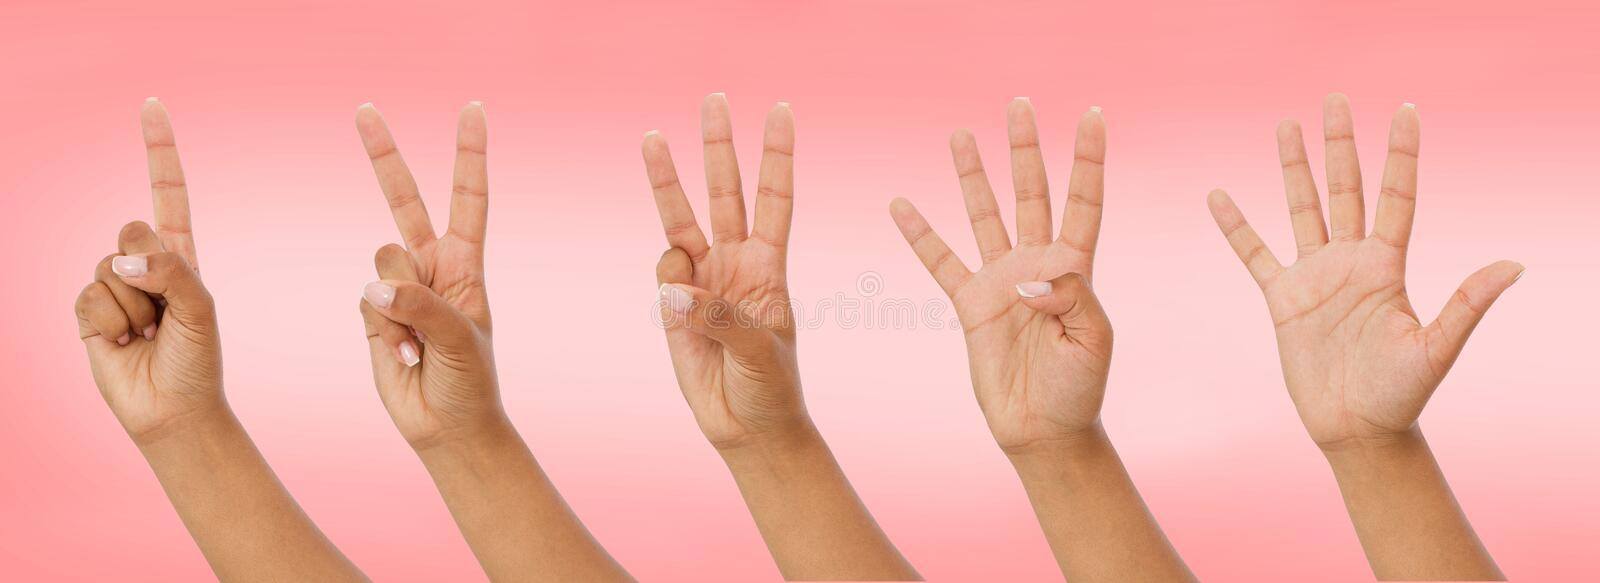 Black hand showing one to five fingers count signs isolated on pink background with Clipping path included. Communication gestures royalty free stock photo